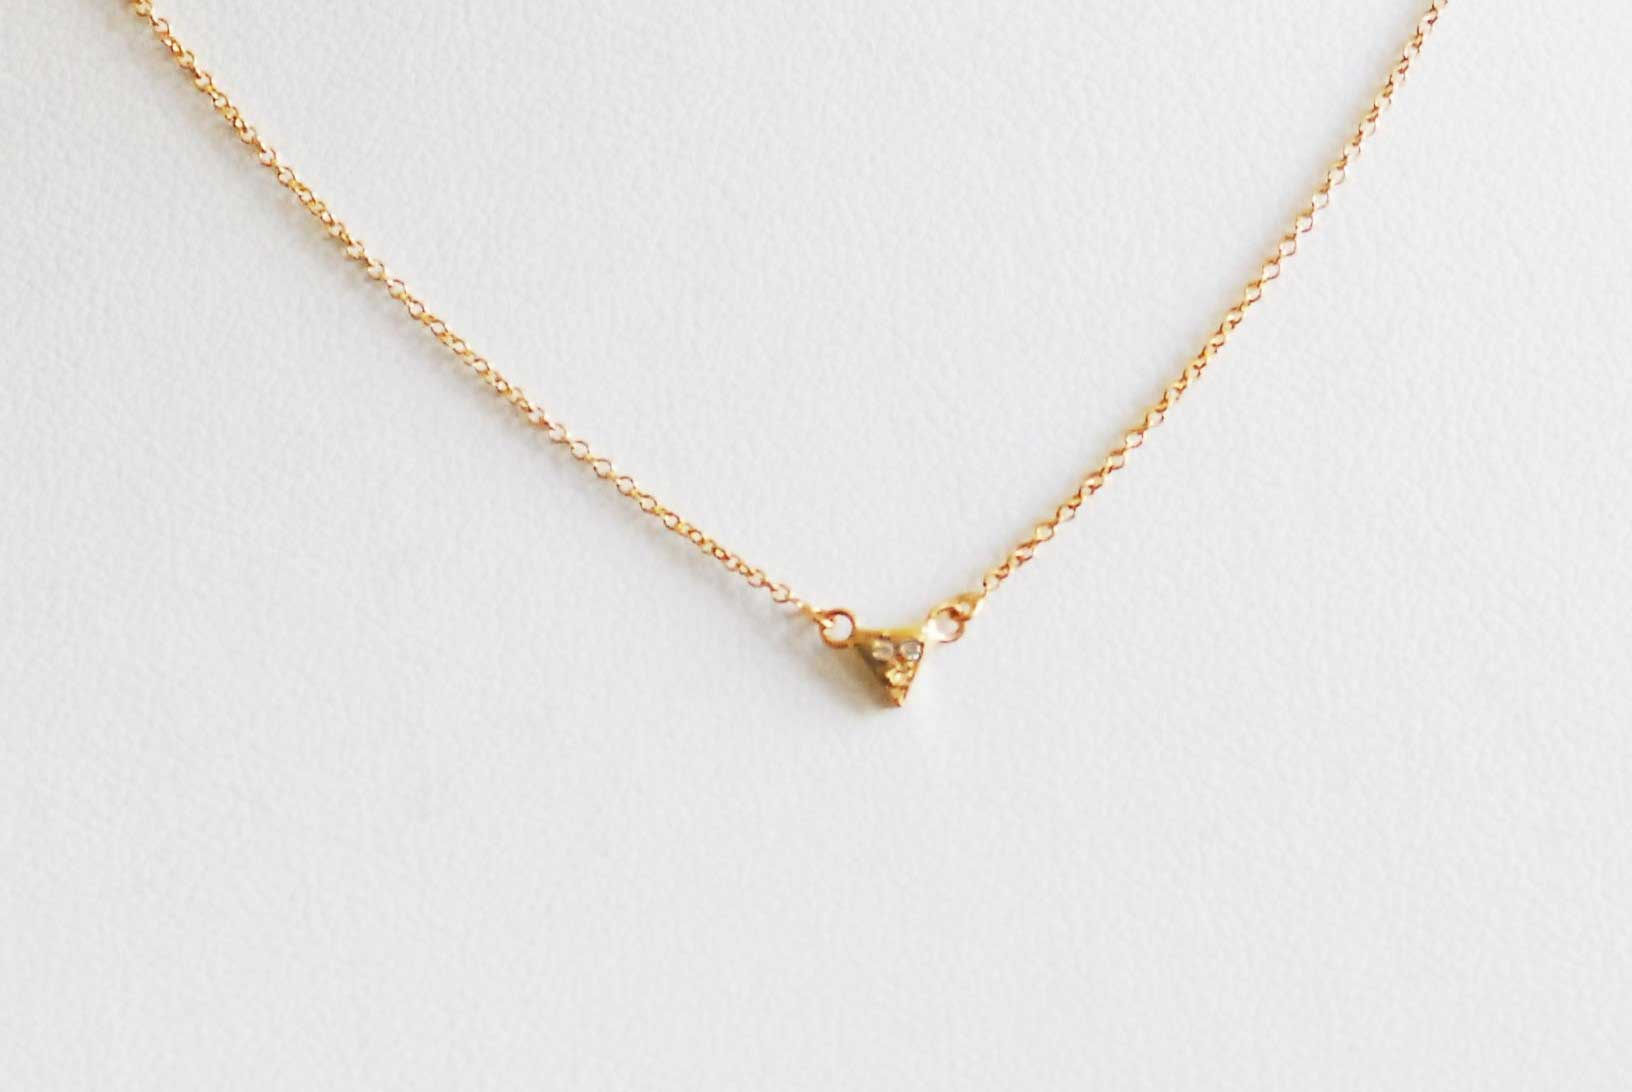 Diamond Triangle Necklace 14K Yellow Gold 0.05 cts. 6J8255